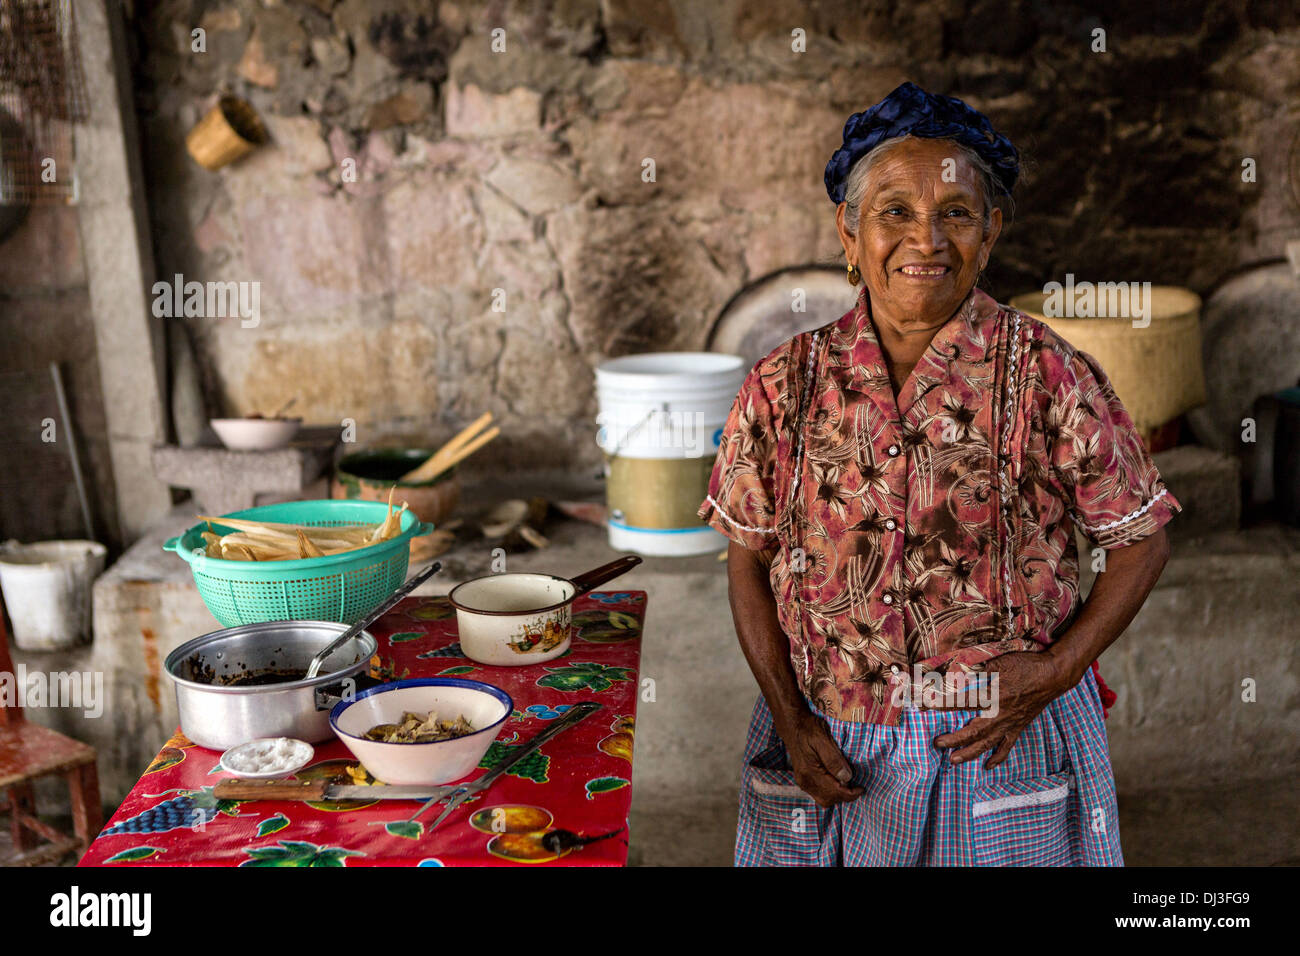 An elderly Zapotec indigenous woman poses in her kitchen in Teotitlan, Mexico. - Stock Image